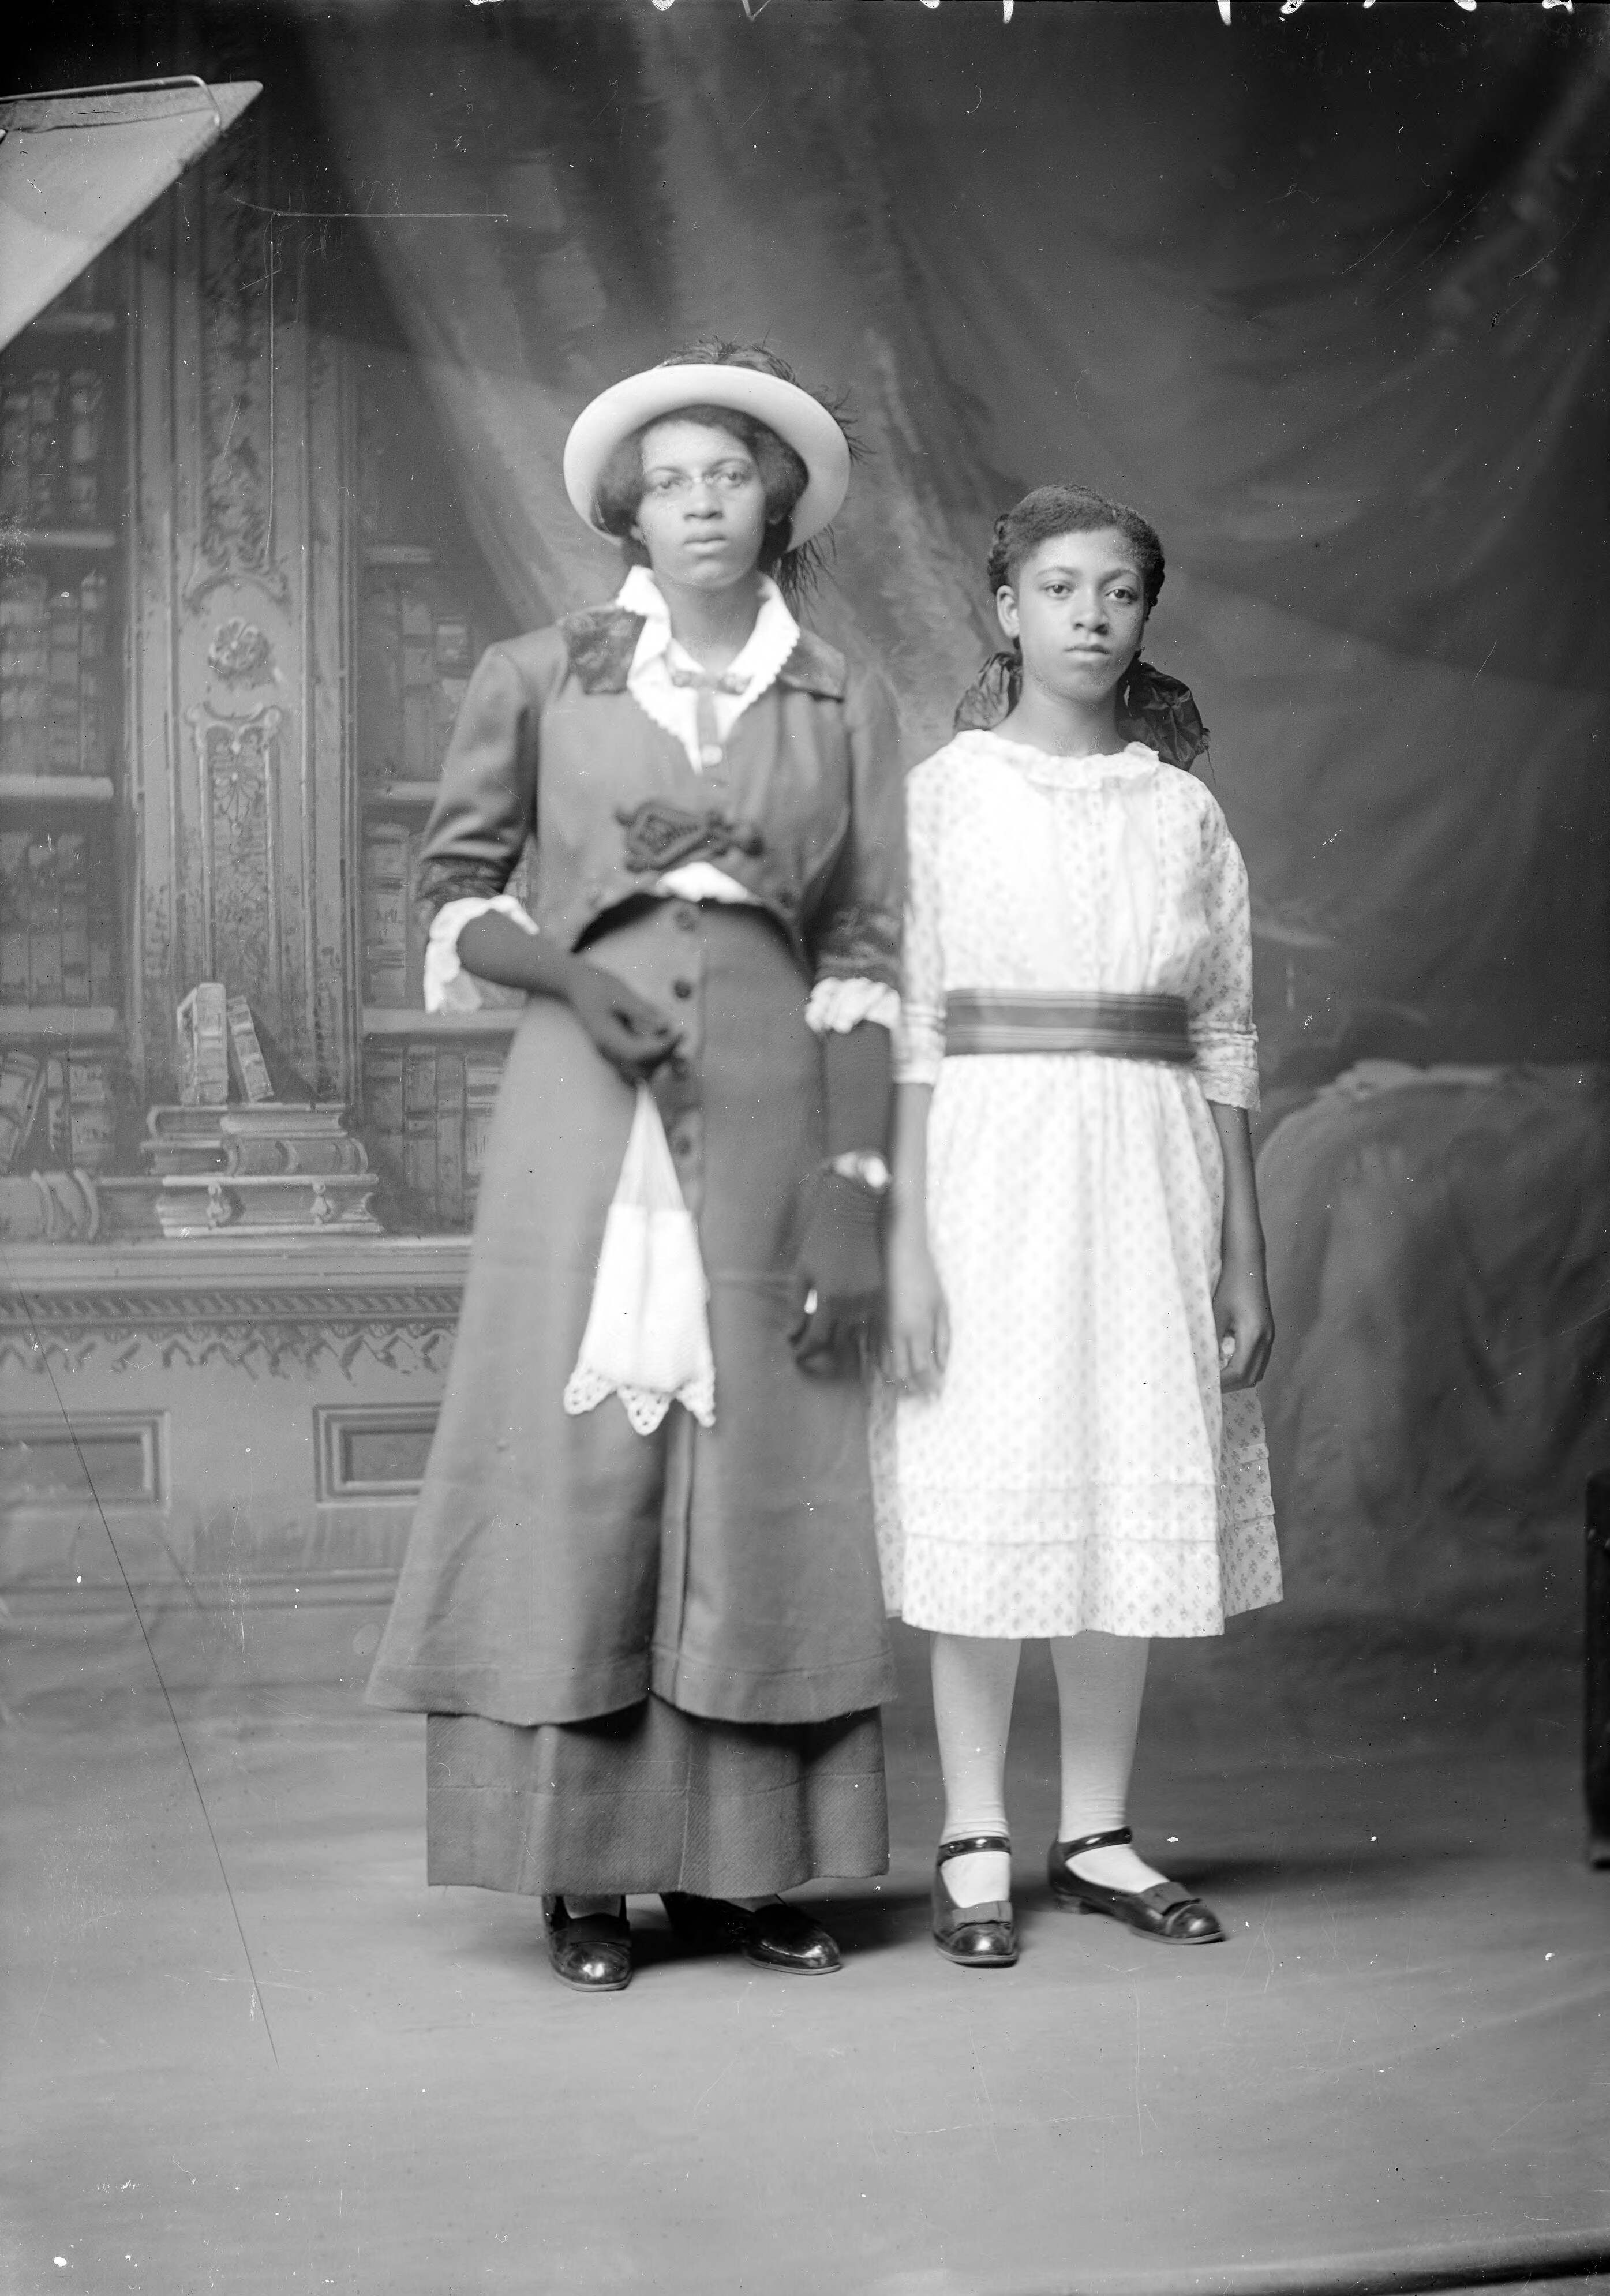 Clyde and Bessie Hansbery